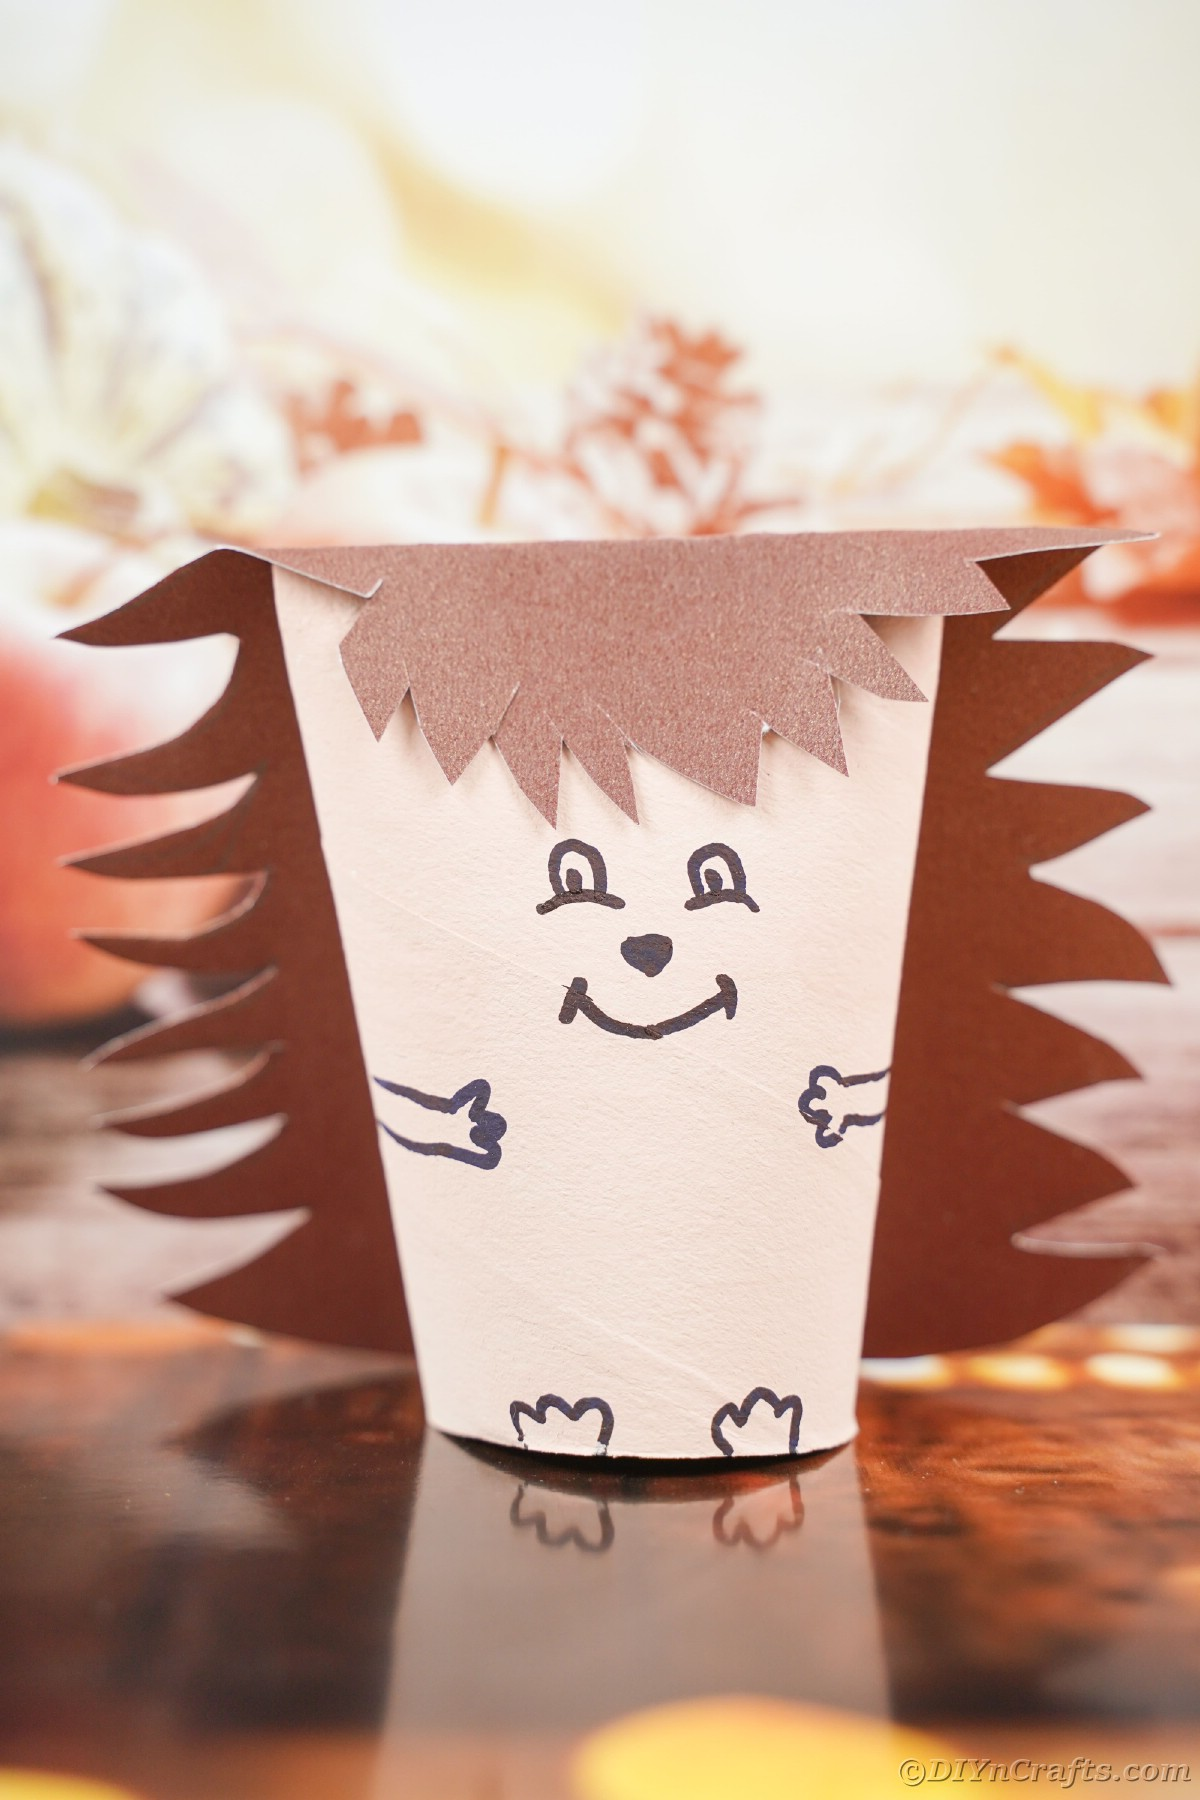 Fake hedgehog made from paper roll on table